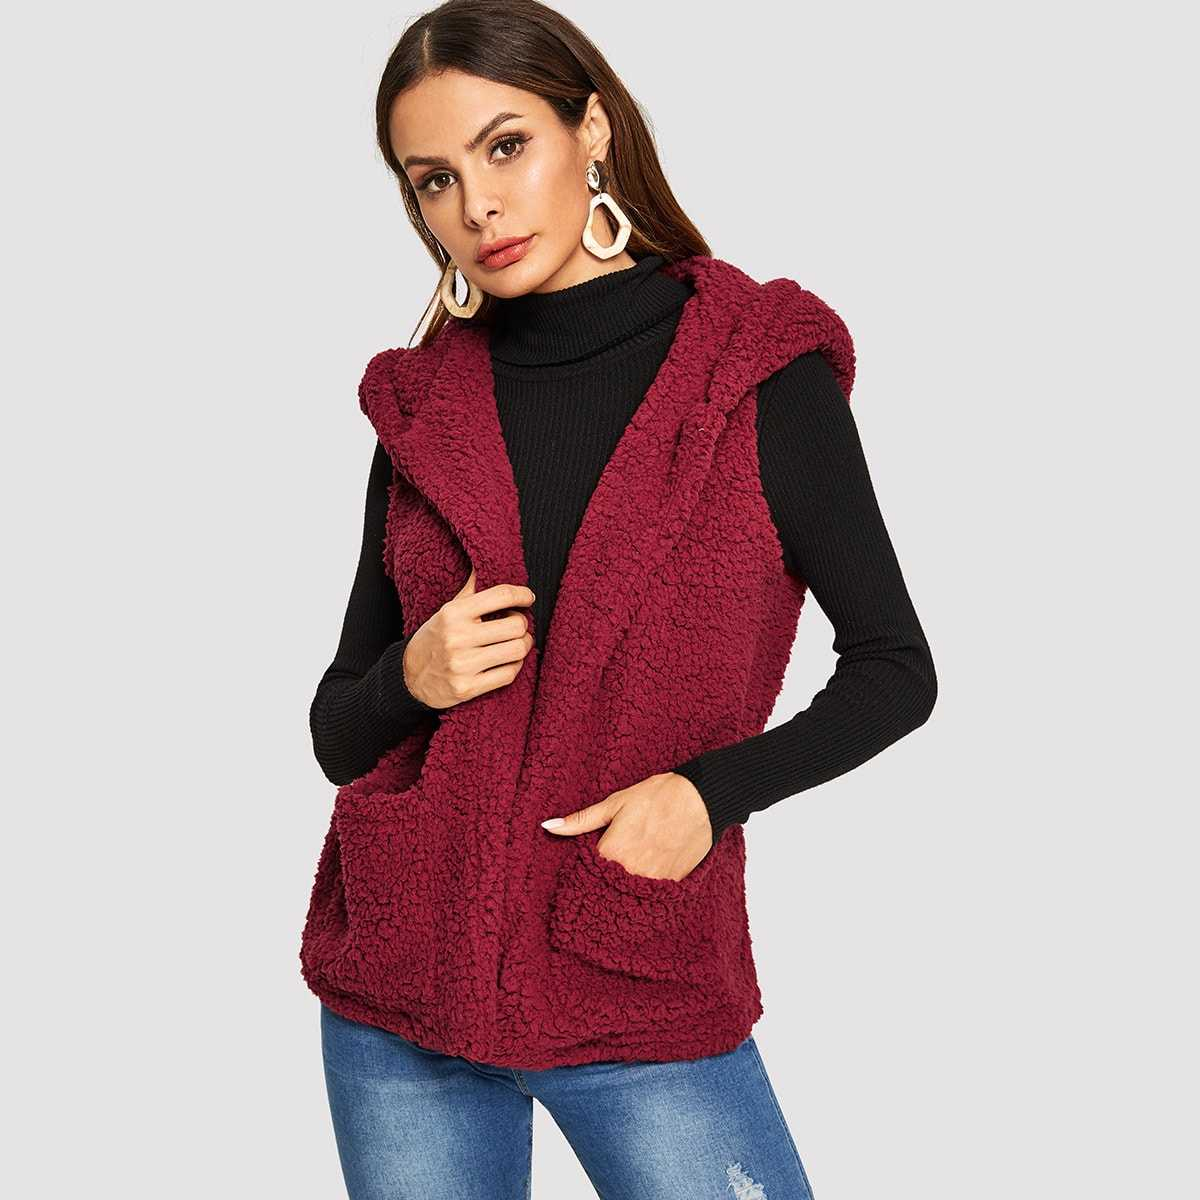 Pocket Front Hooded Shell Teddy Coat in Burgundy by ROMWE on GOOFASH